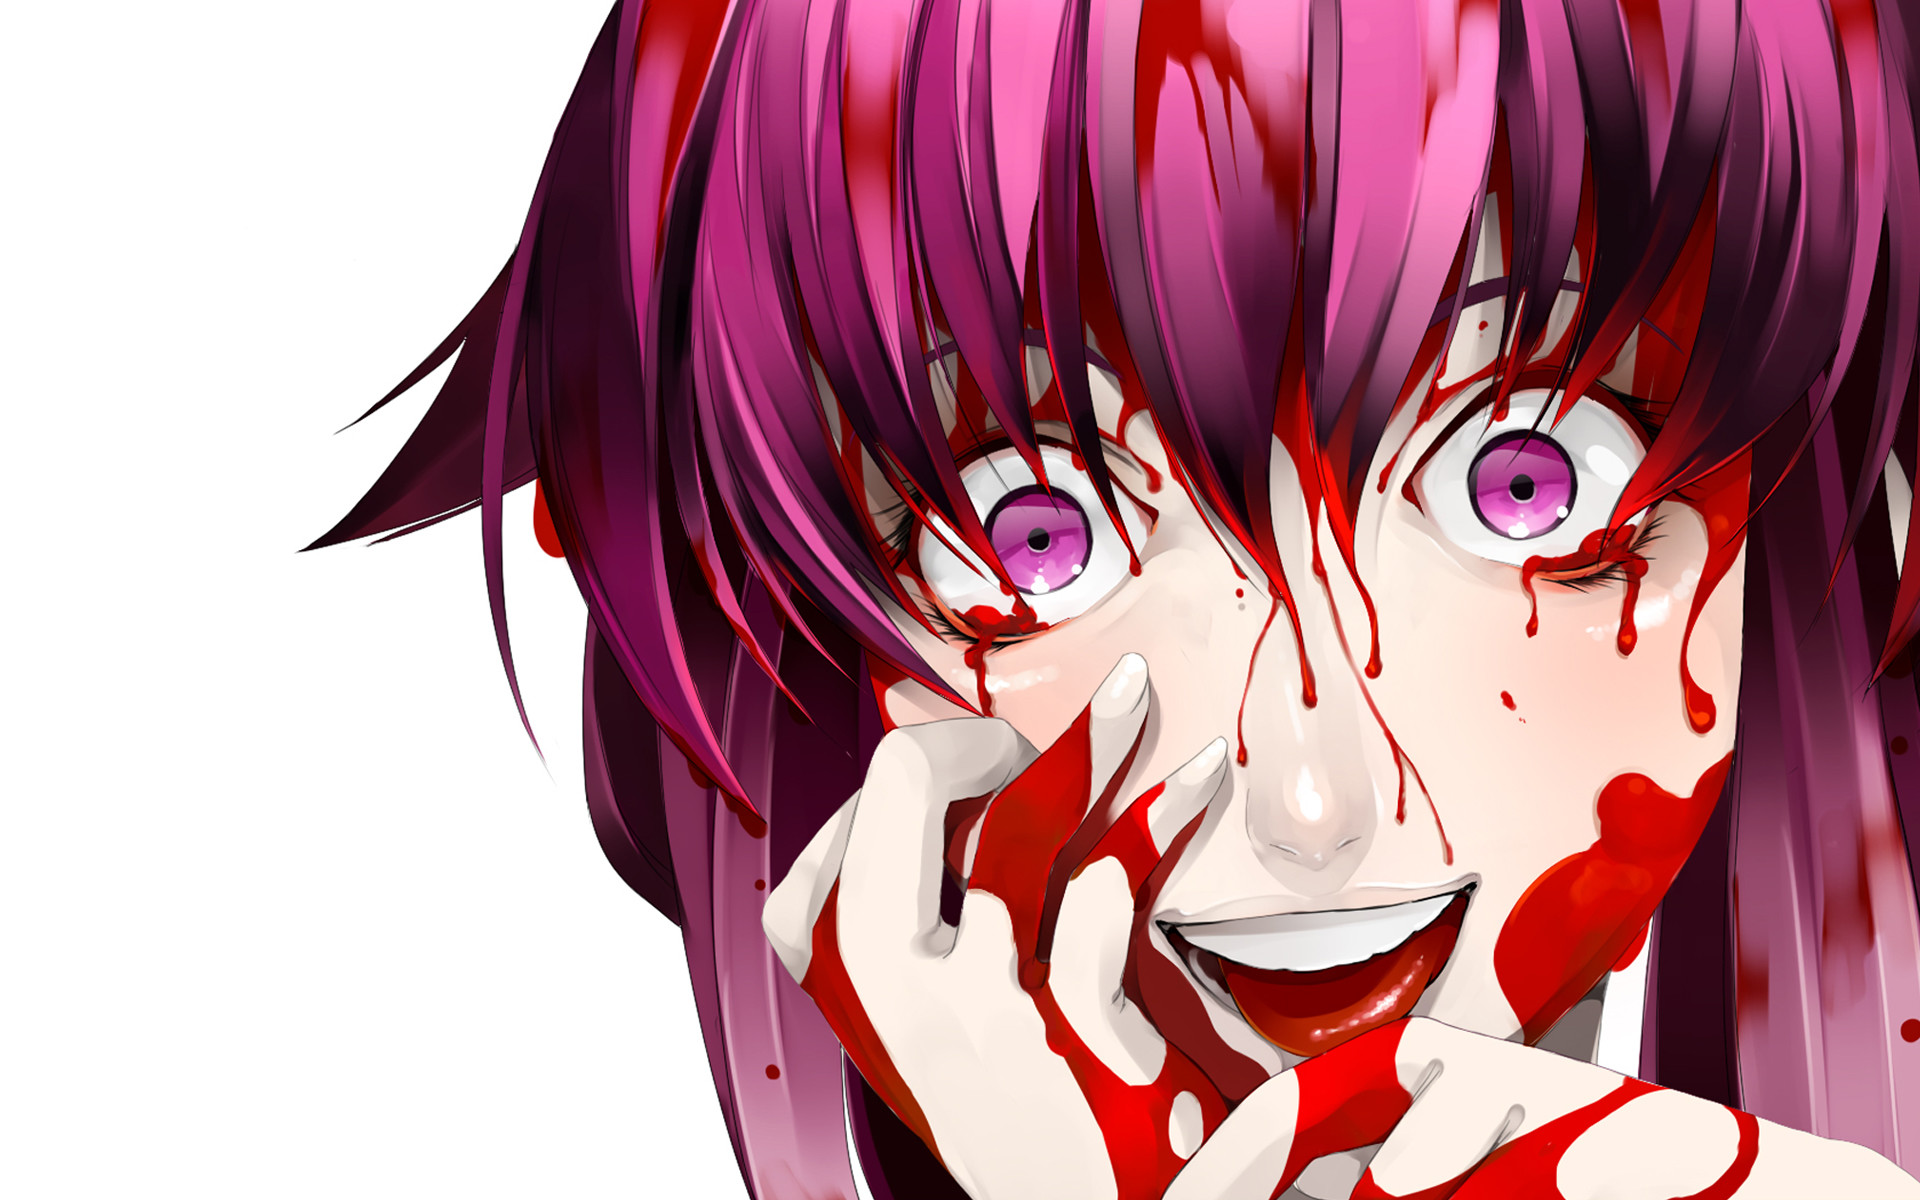 Bloody Anime Wallpapers Hd Wallpaper Collections 4kwallpaper Wiki